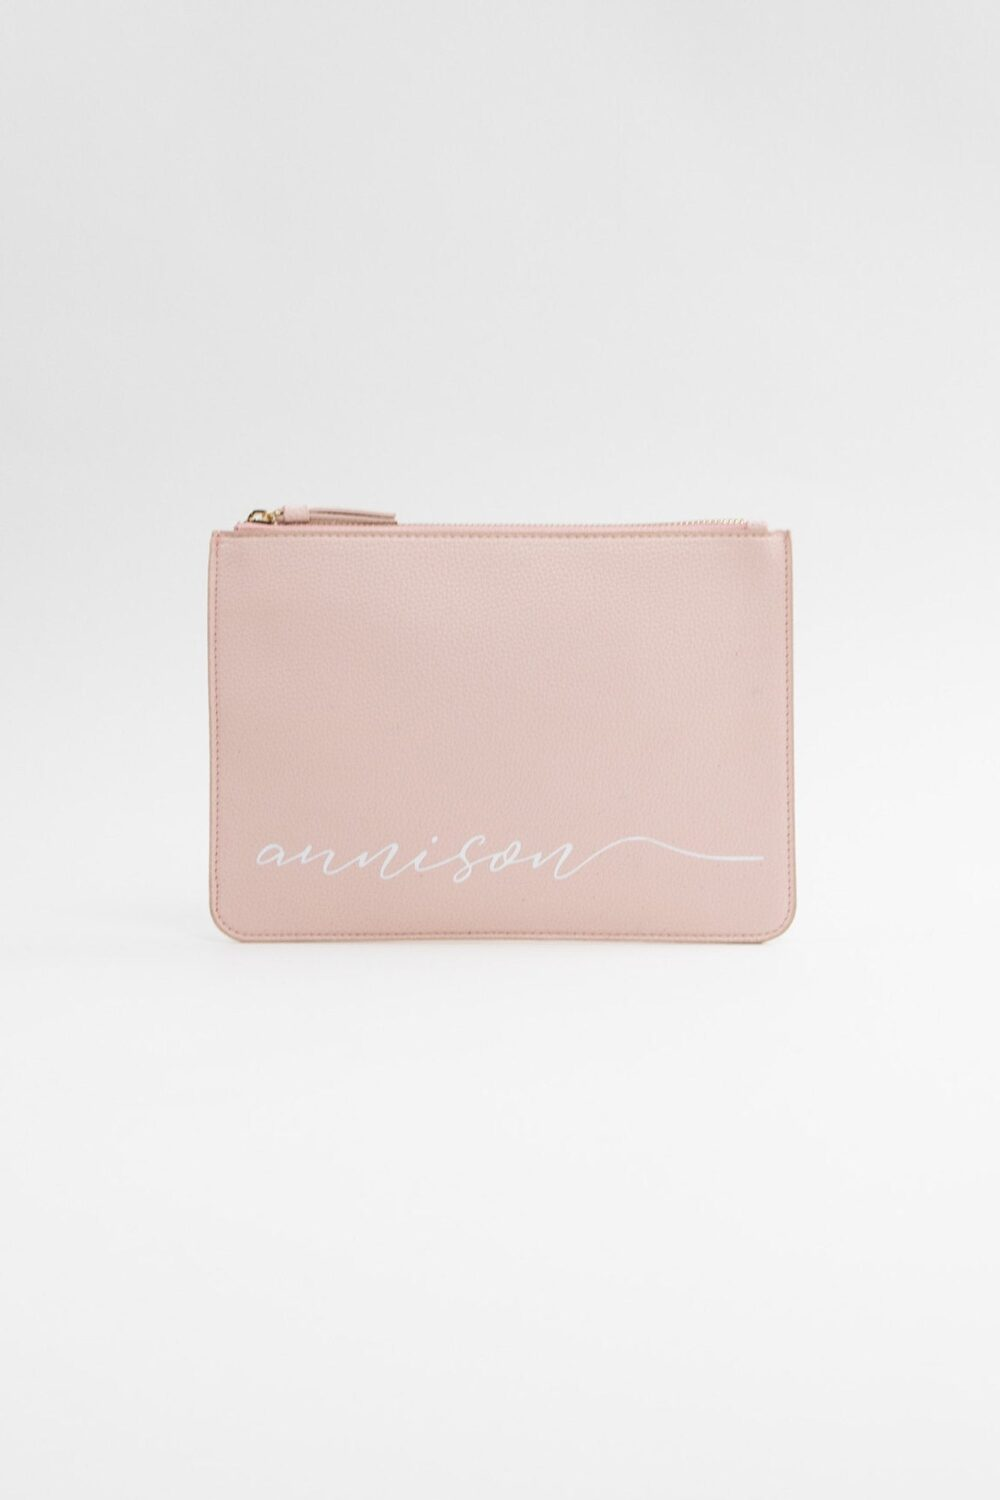 Blush Pink Personalized Vegan Leather Clutch Bag - Script Custom Name Makeup Cosmetic Best Friend Gift Bridesmaid B-Cb05Bl